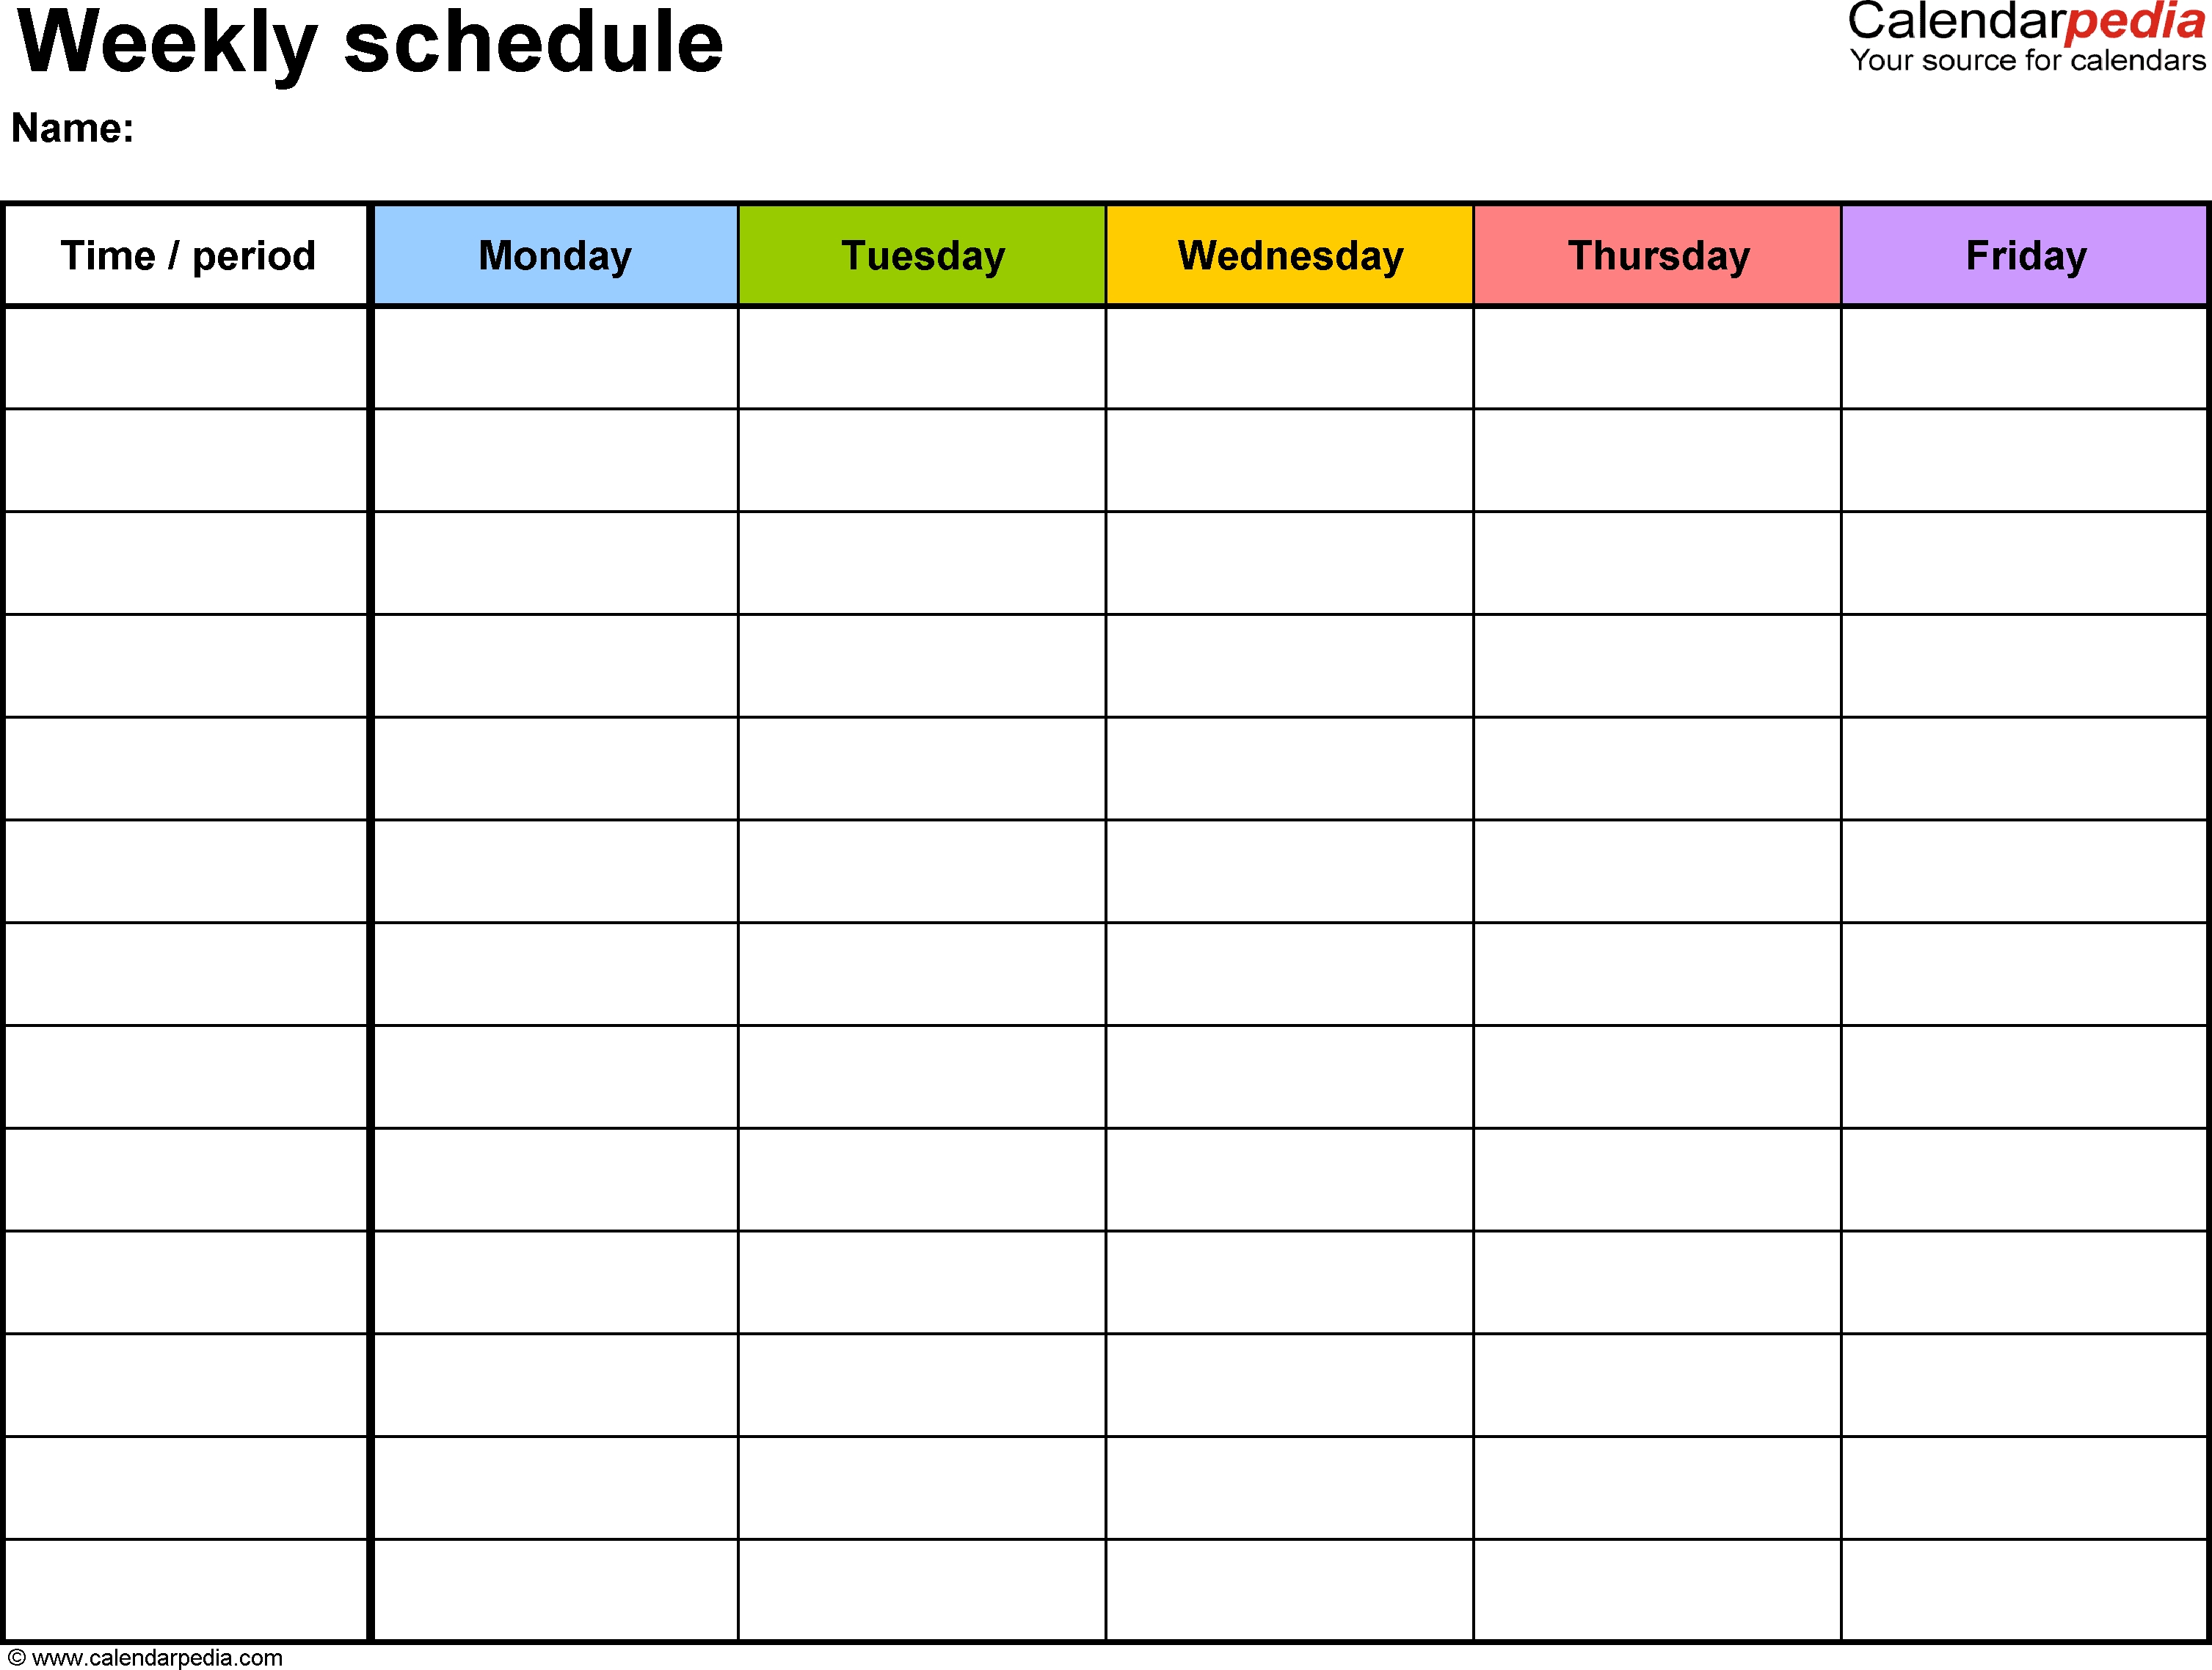 Weekly Schedule Template For Word Version 1 Landscape 1 Page3abry